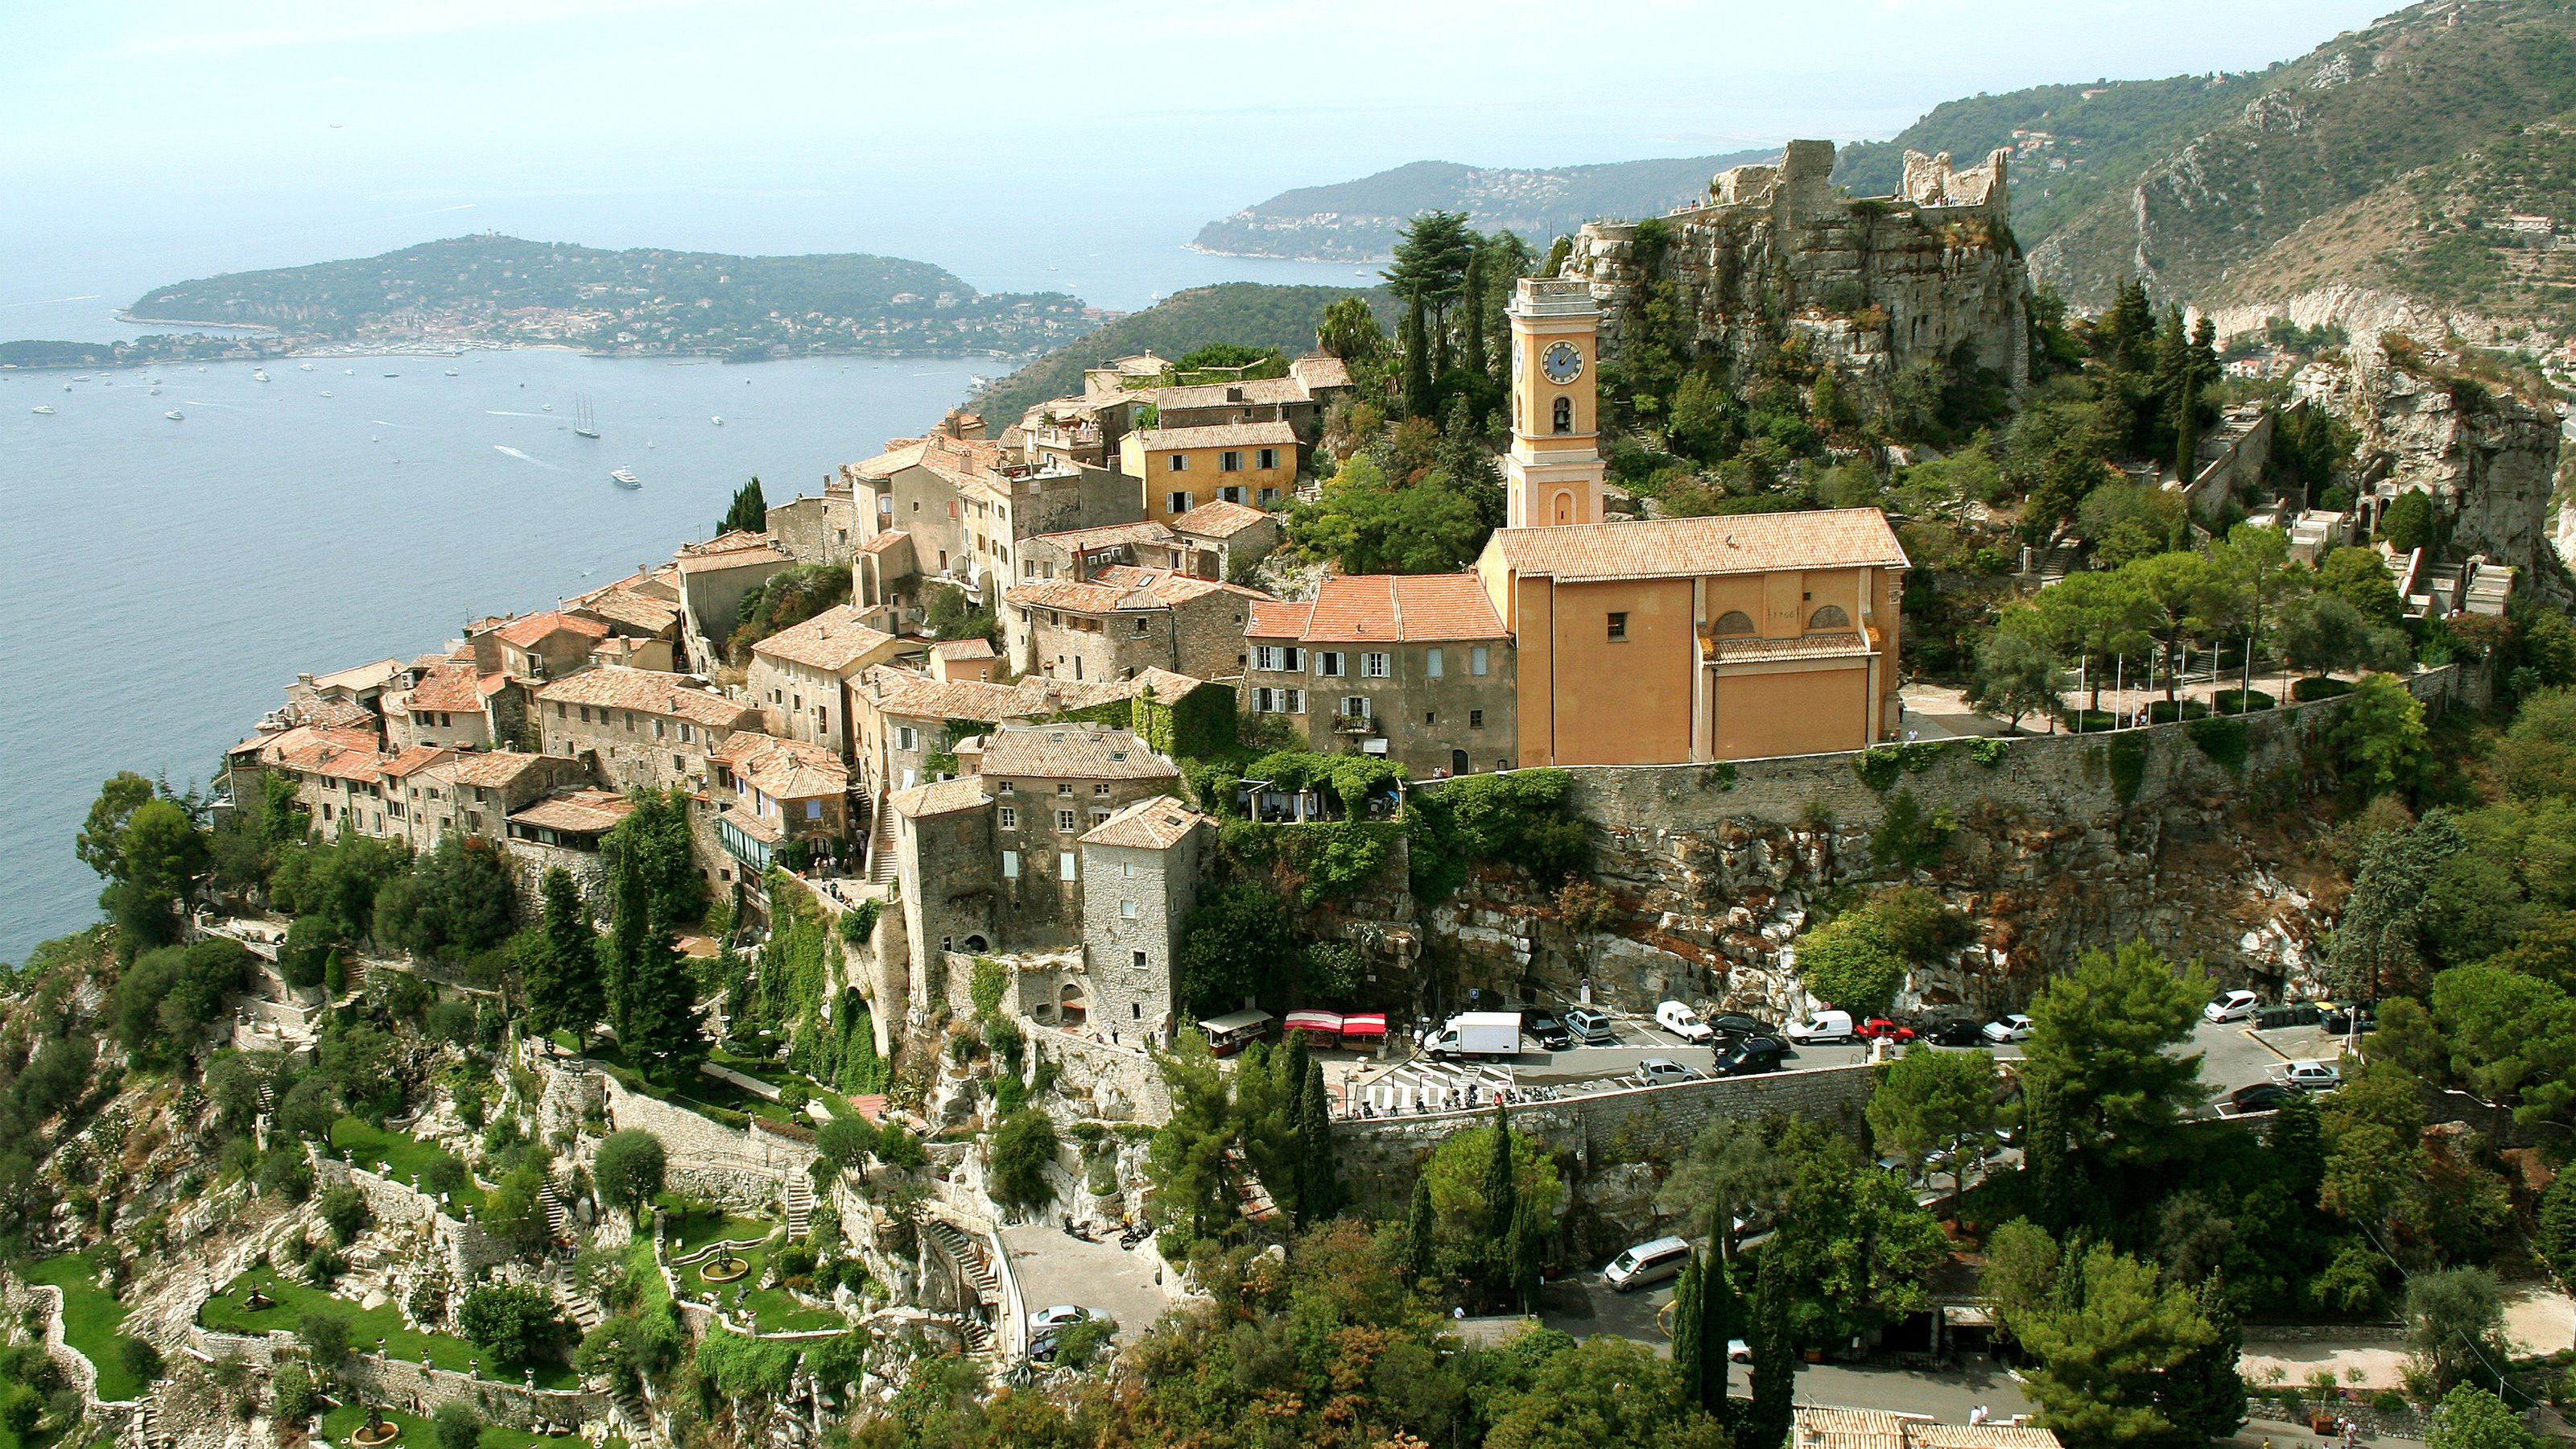 Old stone establishments in the town of Antibes in France